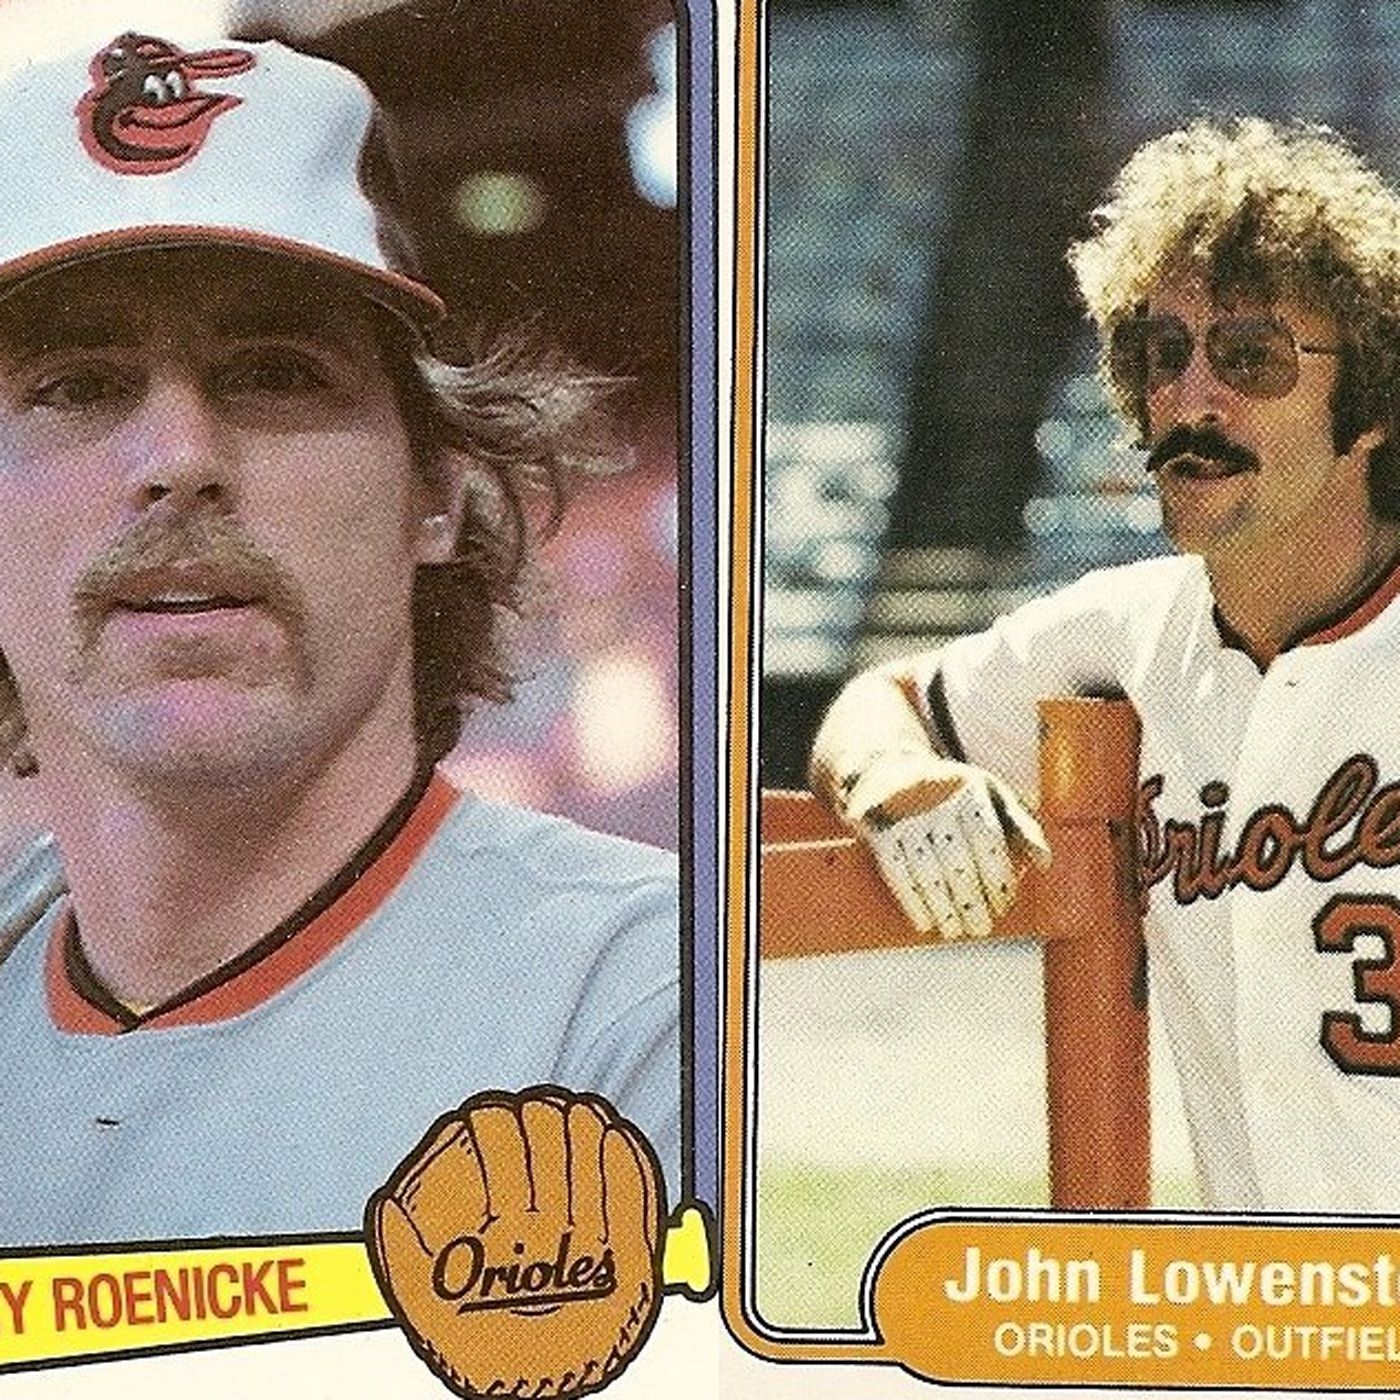 Top 40 Orioles Of All Time 34 Gary Roenicke And John Lowenstein